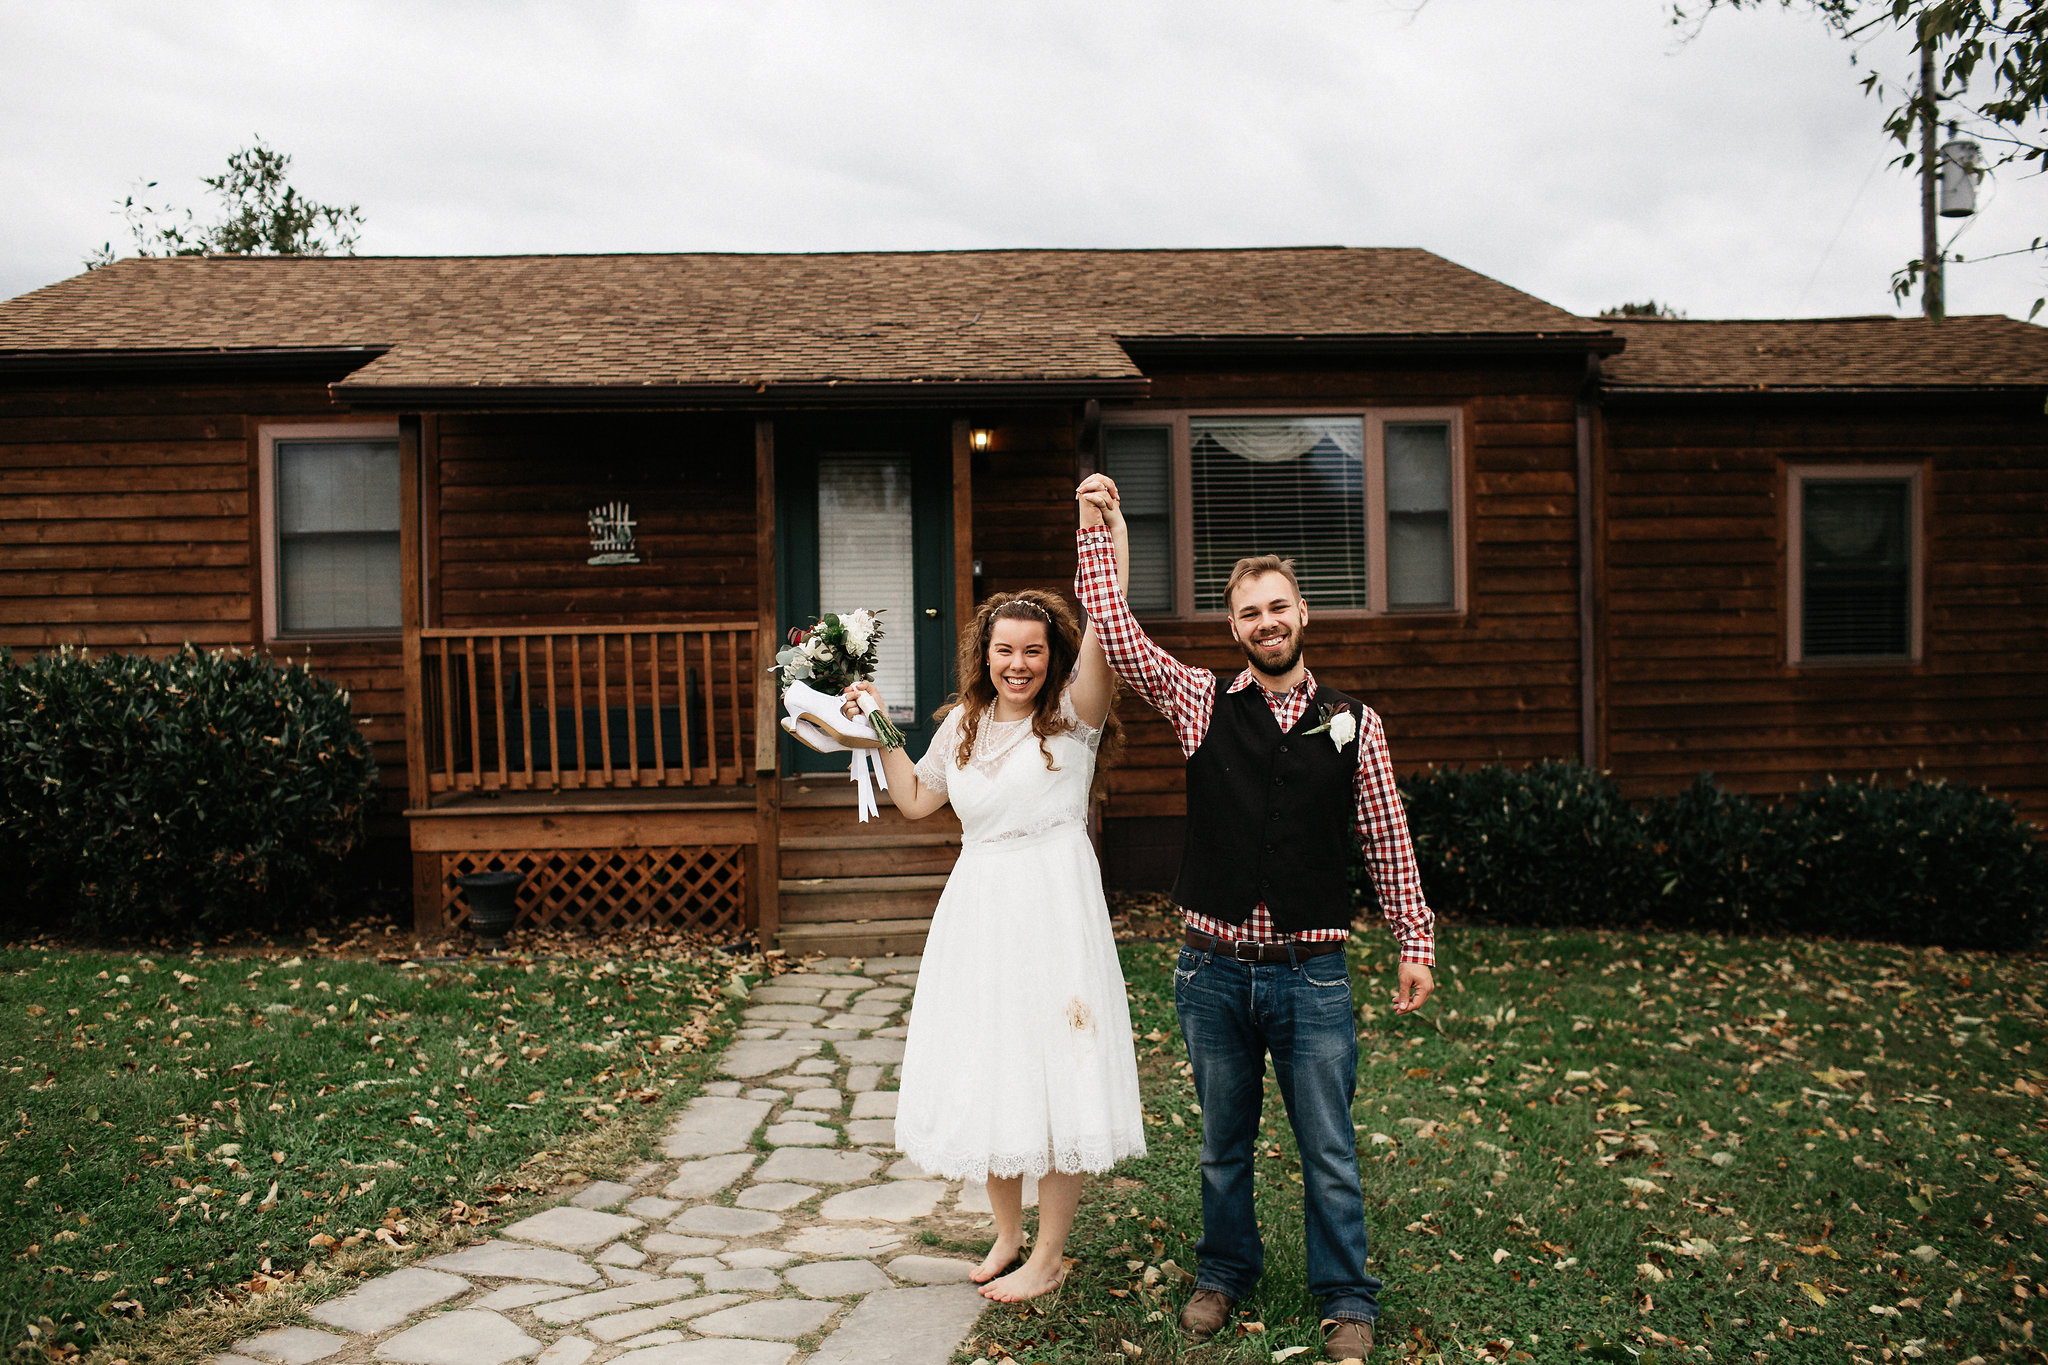 Caitlin&CodyMarried2017-11-03at19.19.40PM107.jpg